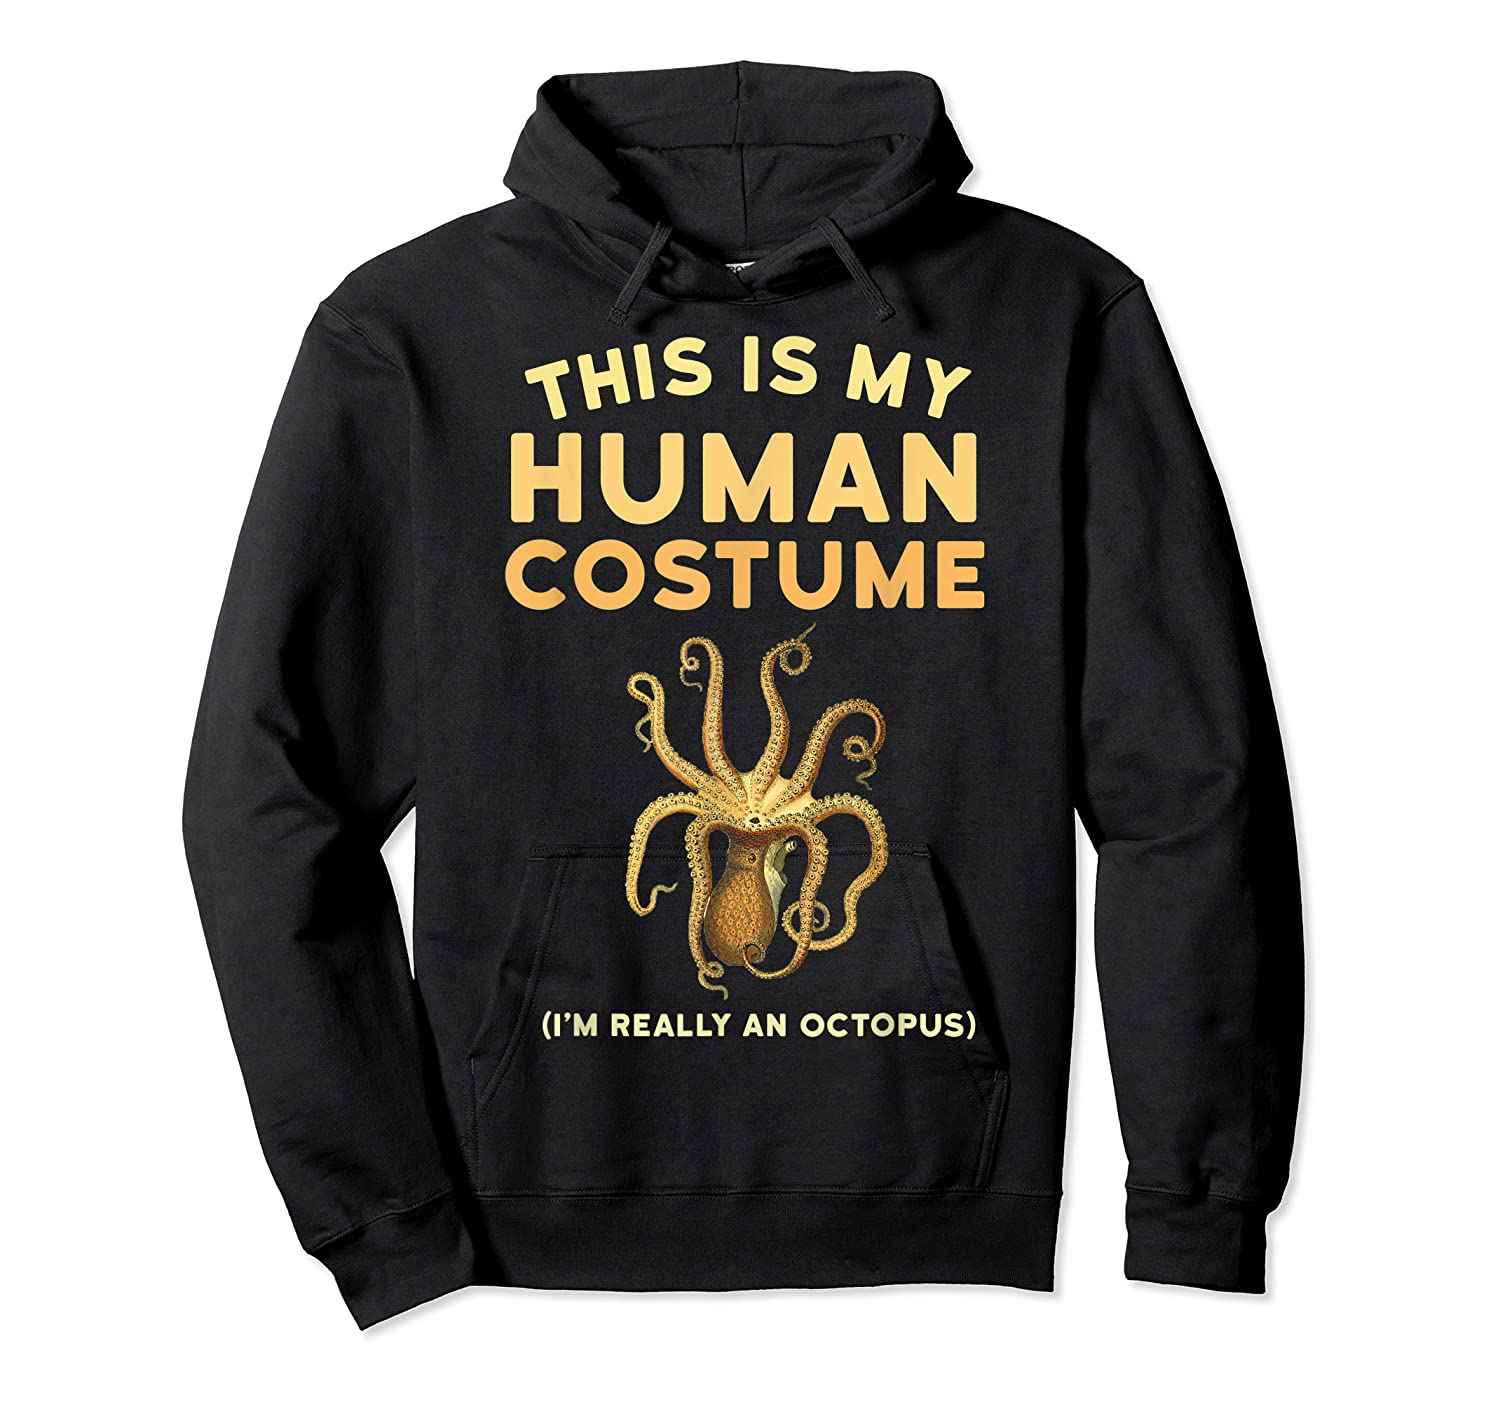 Octopus This Is My Human Costume I'm Really An Octopus Shirts Unisex Pullover Hoodie